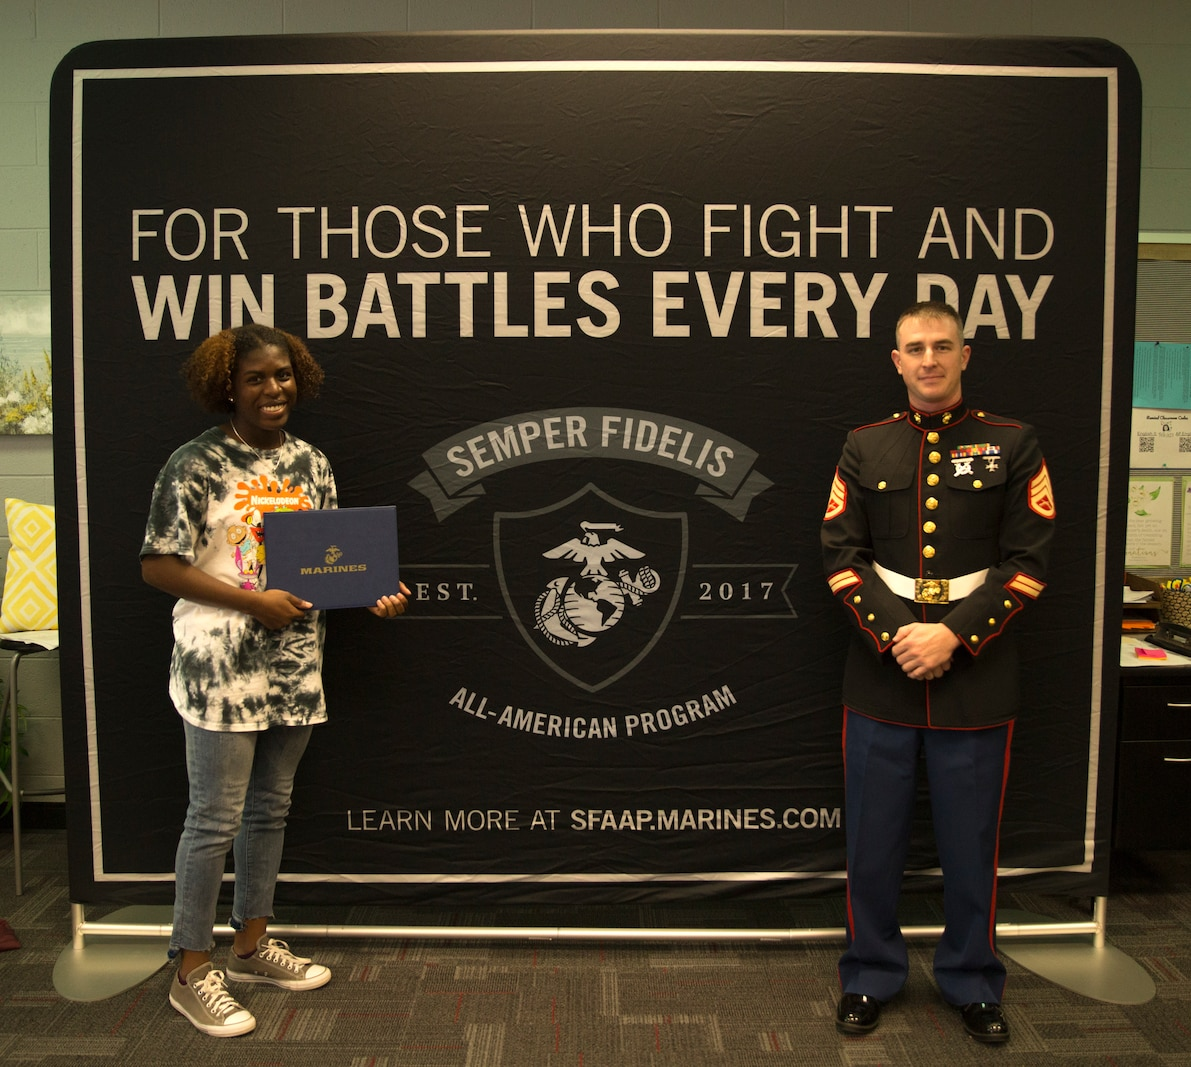 Haley Bishop, left, receives a congratulatory certificate for attending the 2019 Semper Fidelis All-American Program Battles Won Academy, July 11-15, in Washington, D.C.